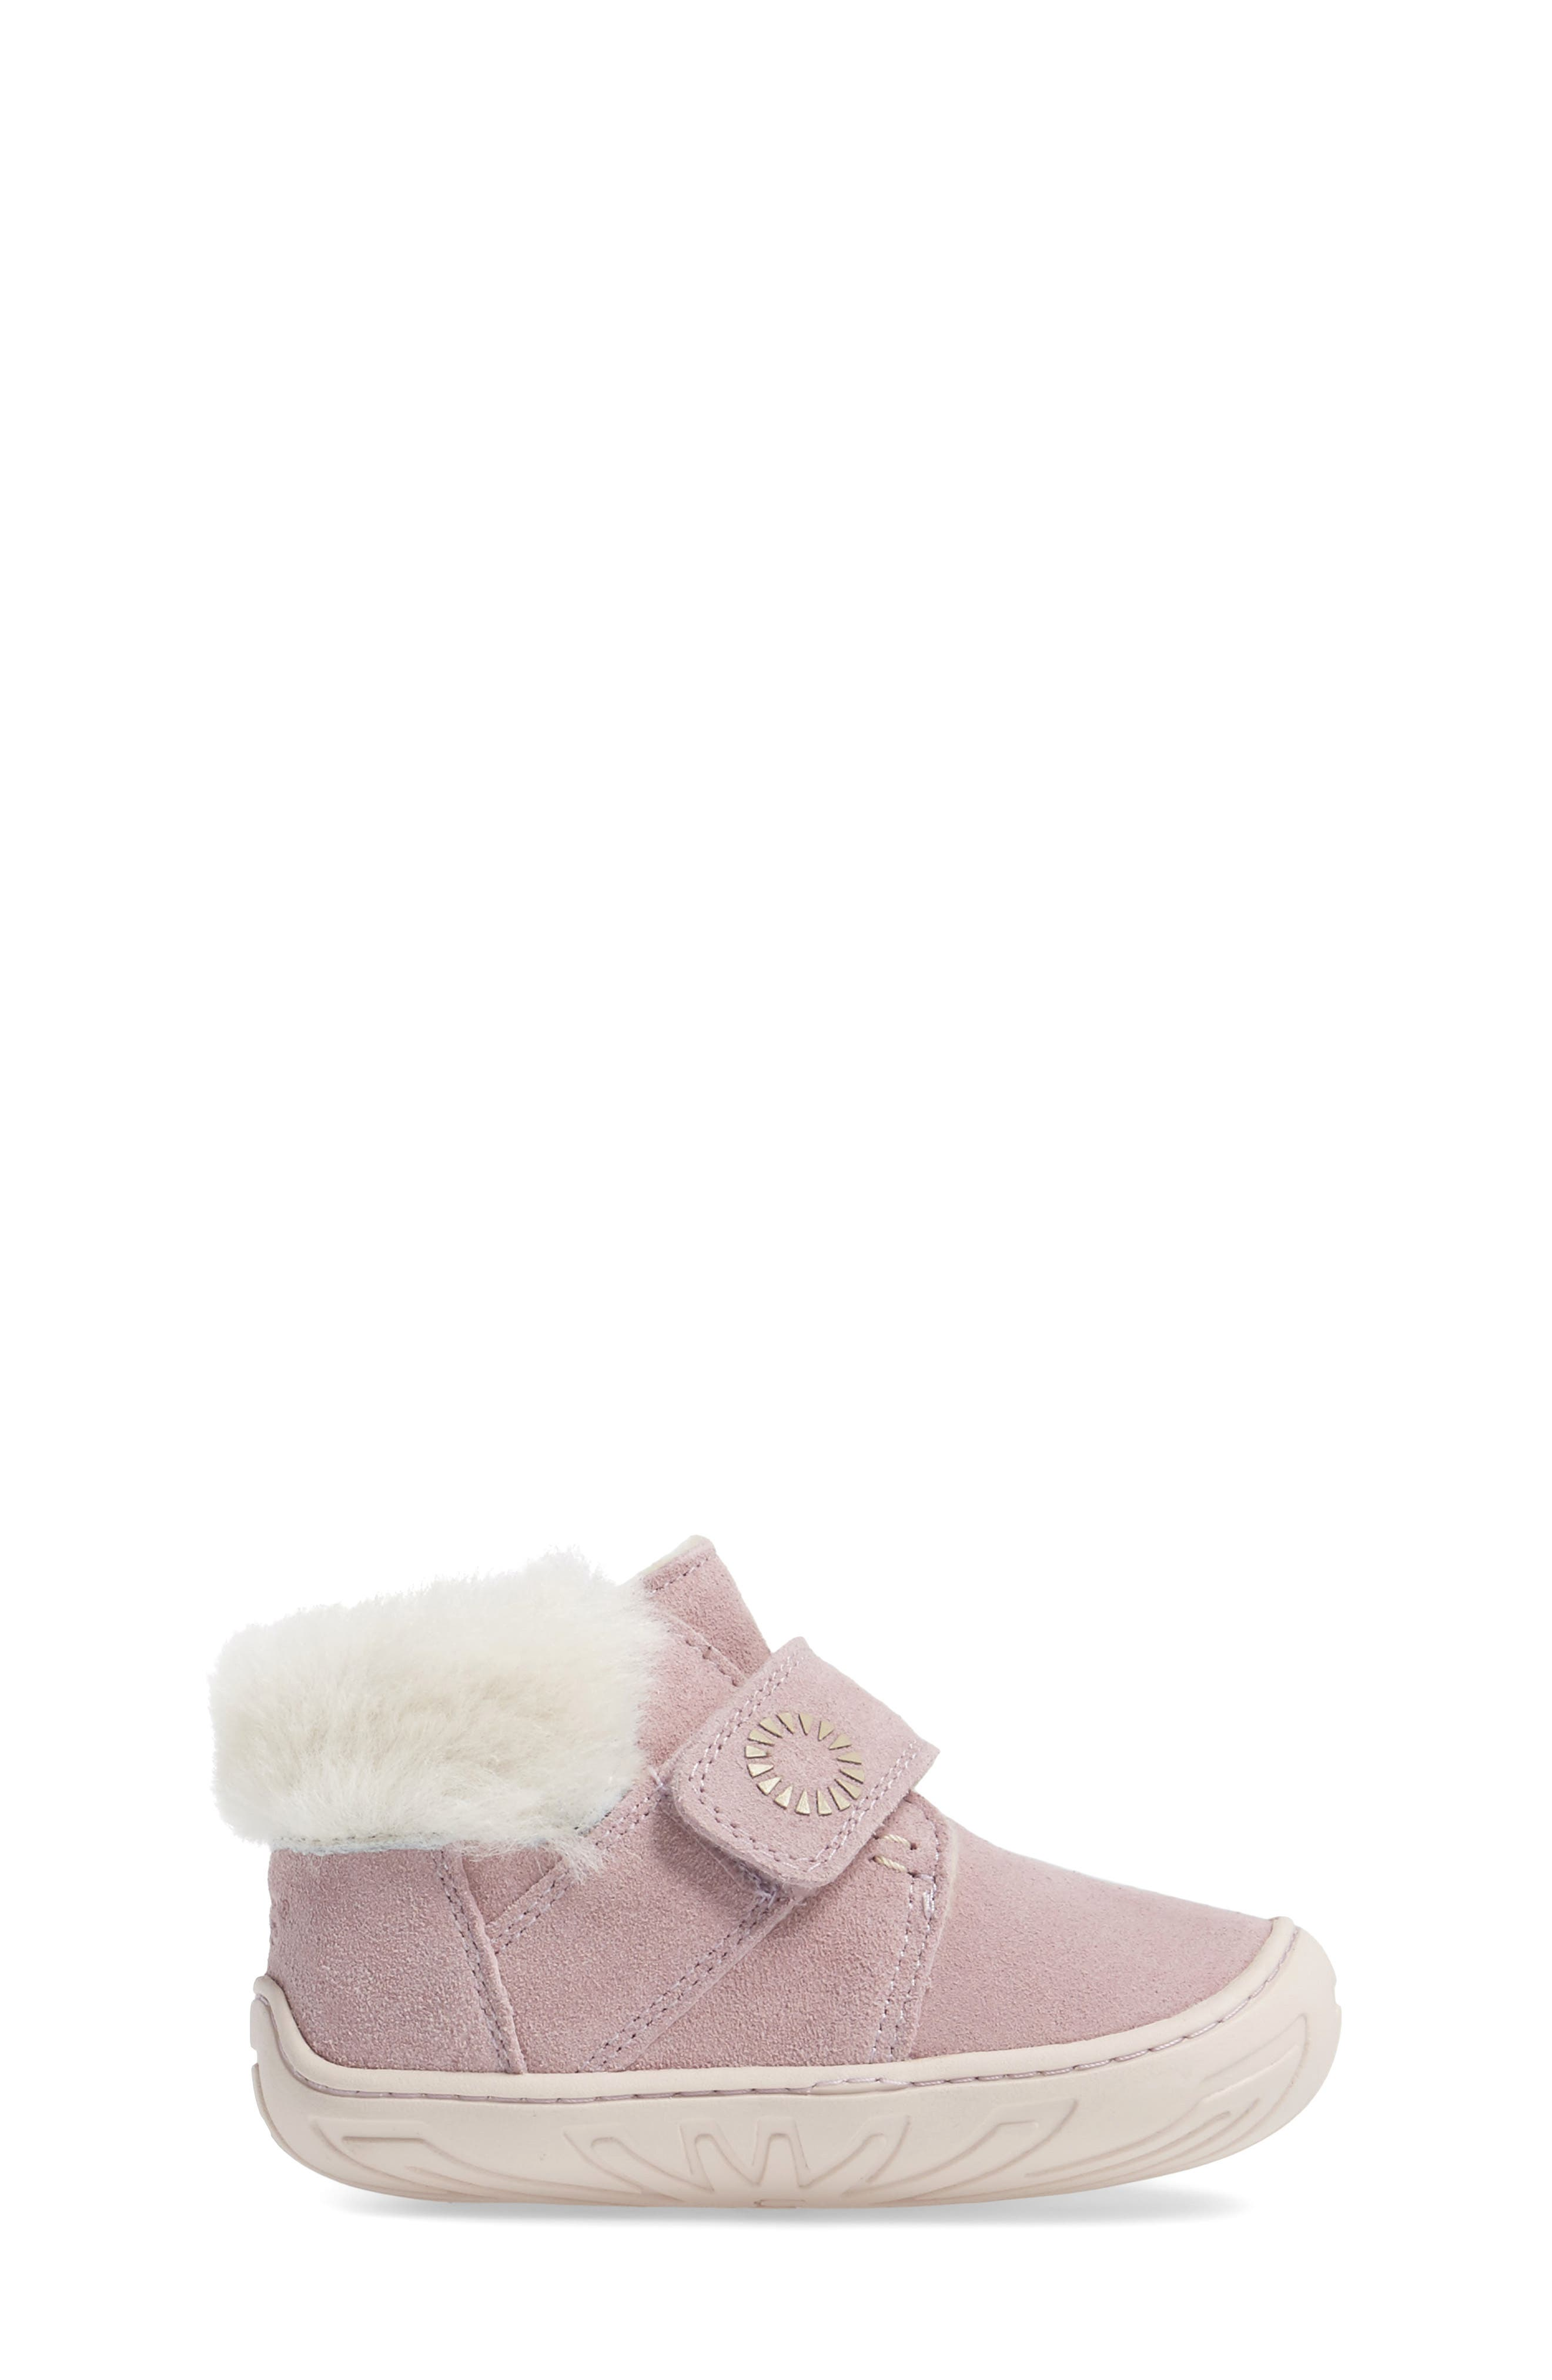 Alternate Image 3  - UGG® Jorgen Genuine Shearling Bootie (Baby, Walker & Toddler)